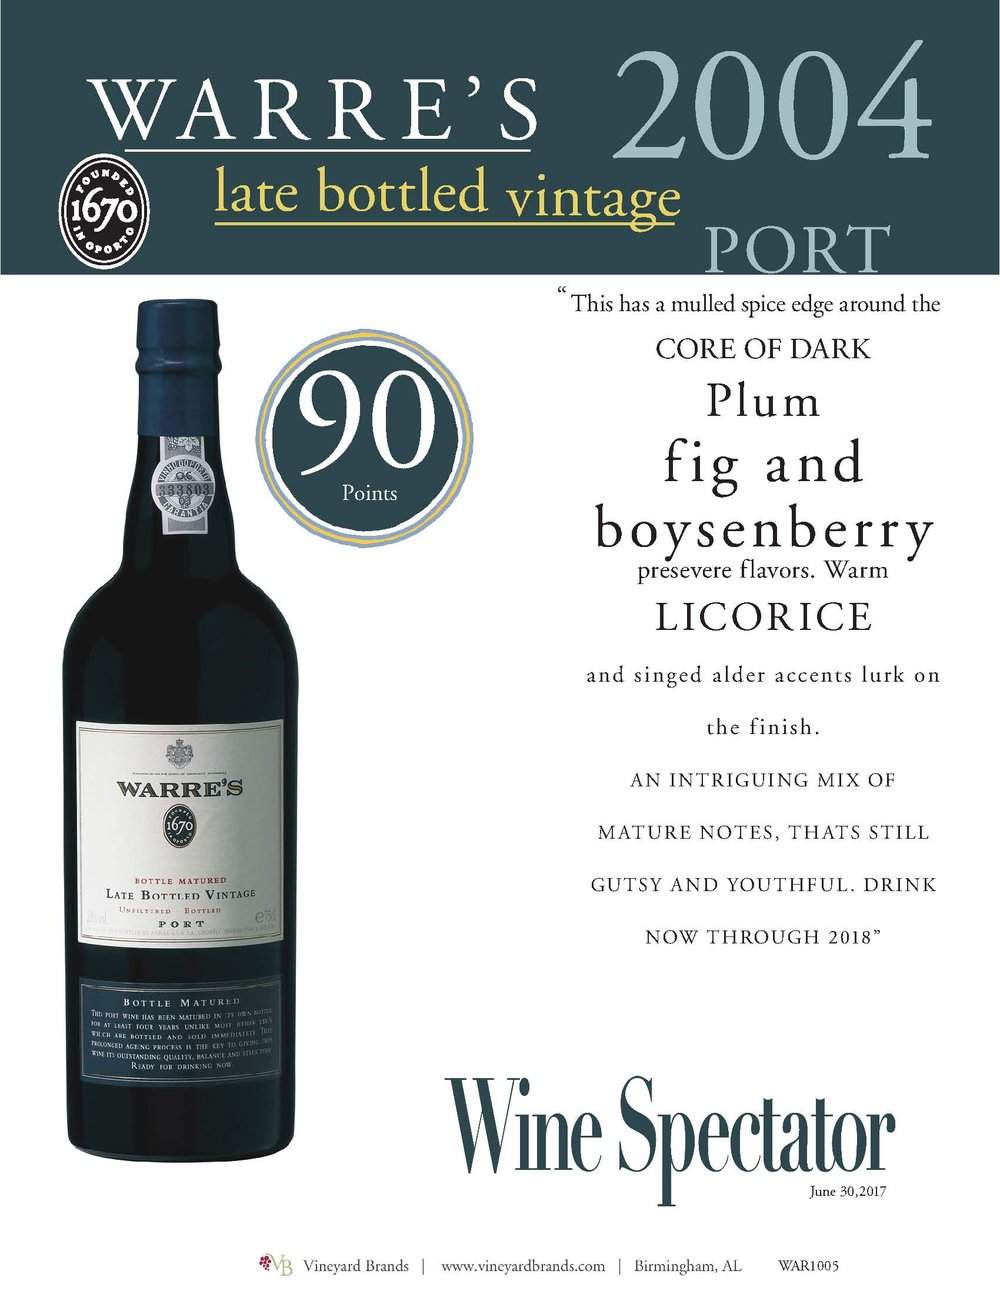 Warre's Late Bottled Vintage 2004.jpg